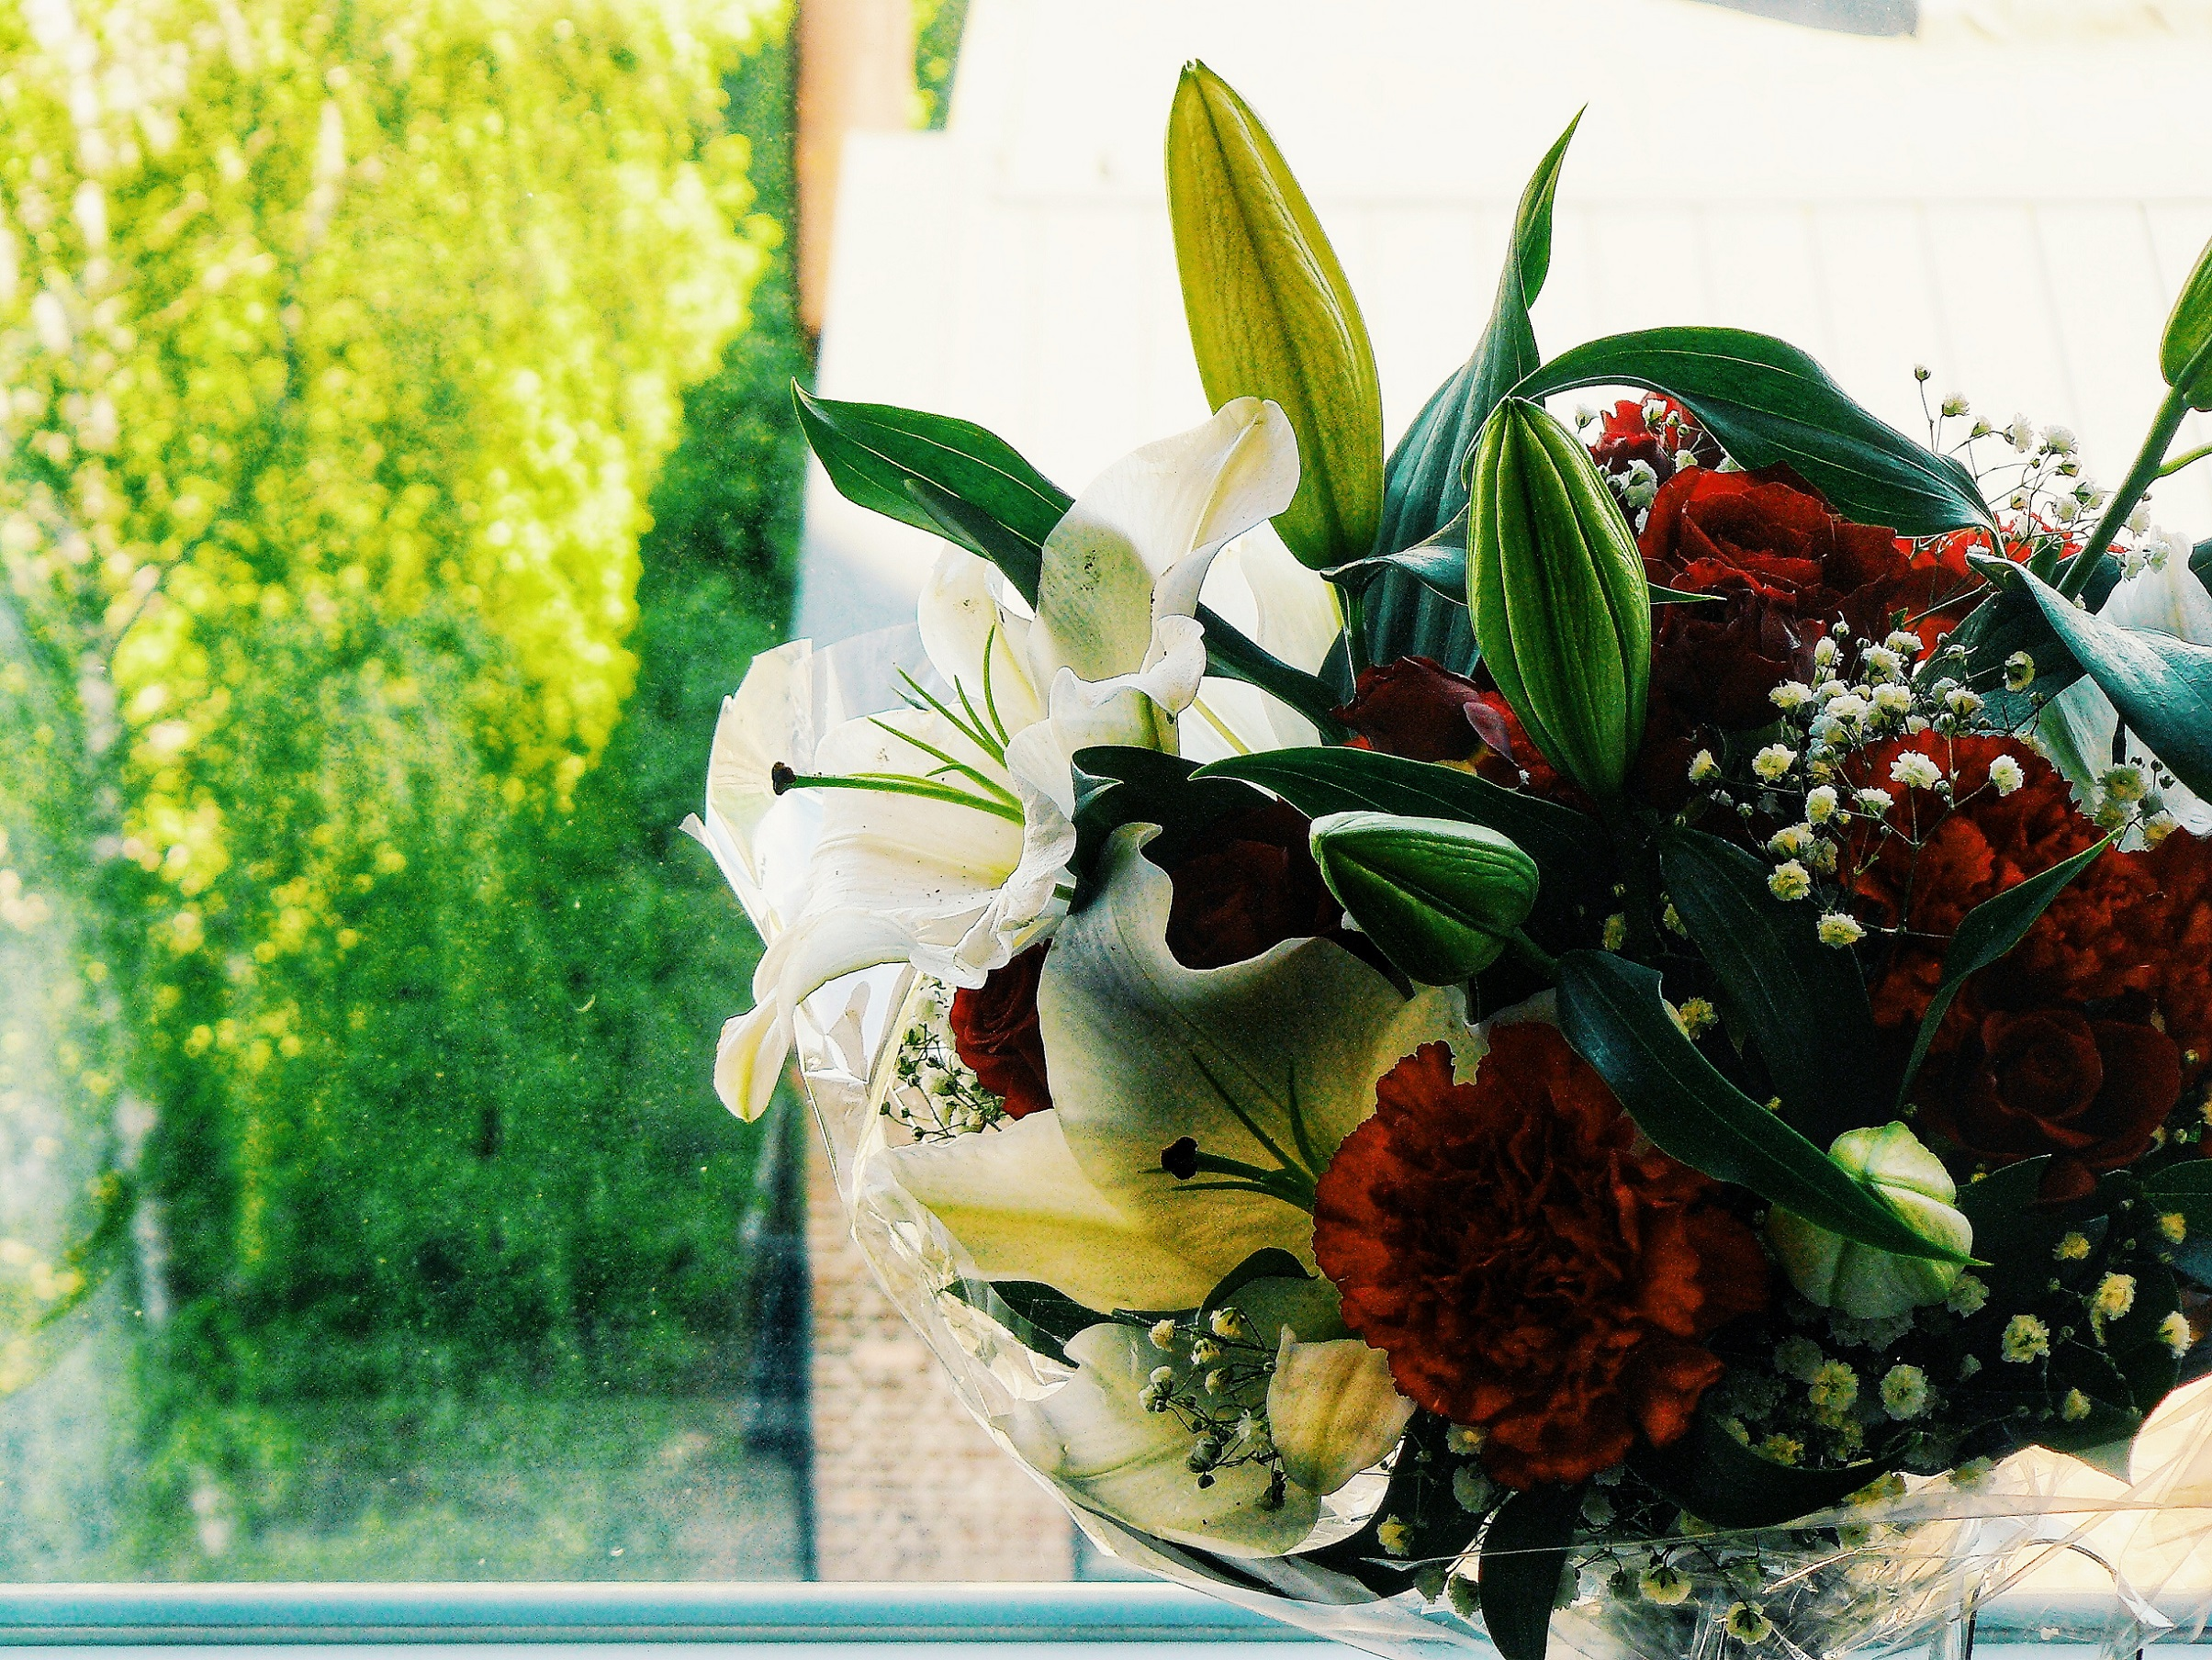 Outlandish blog flowers showing affection love